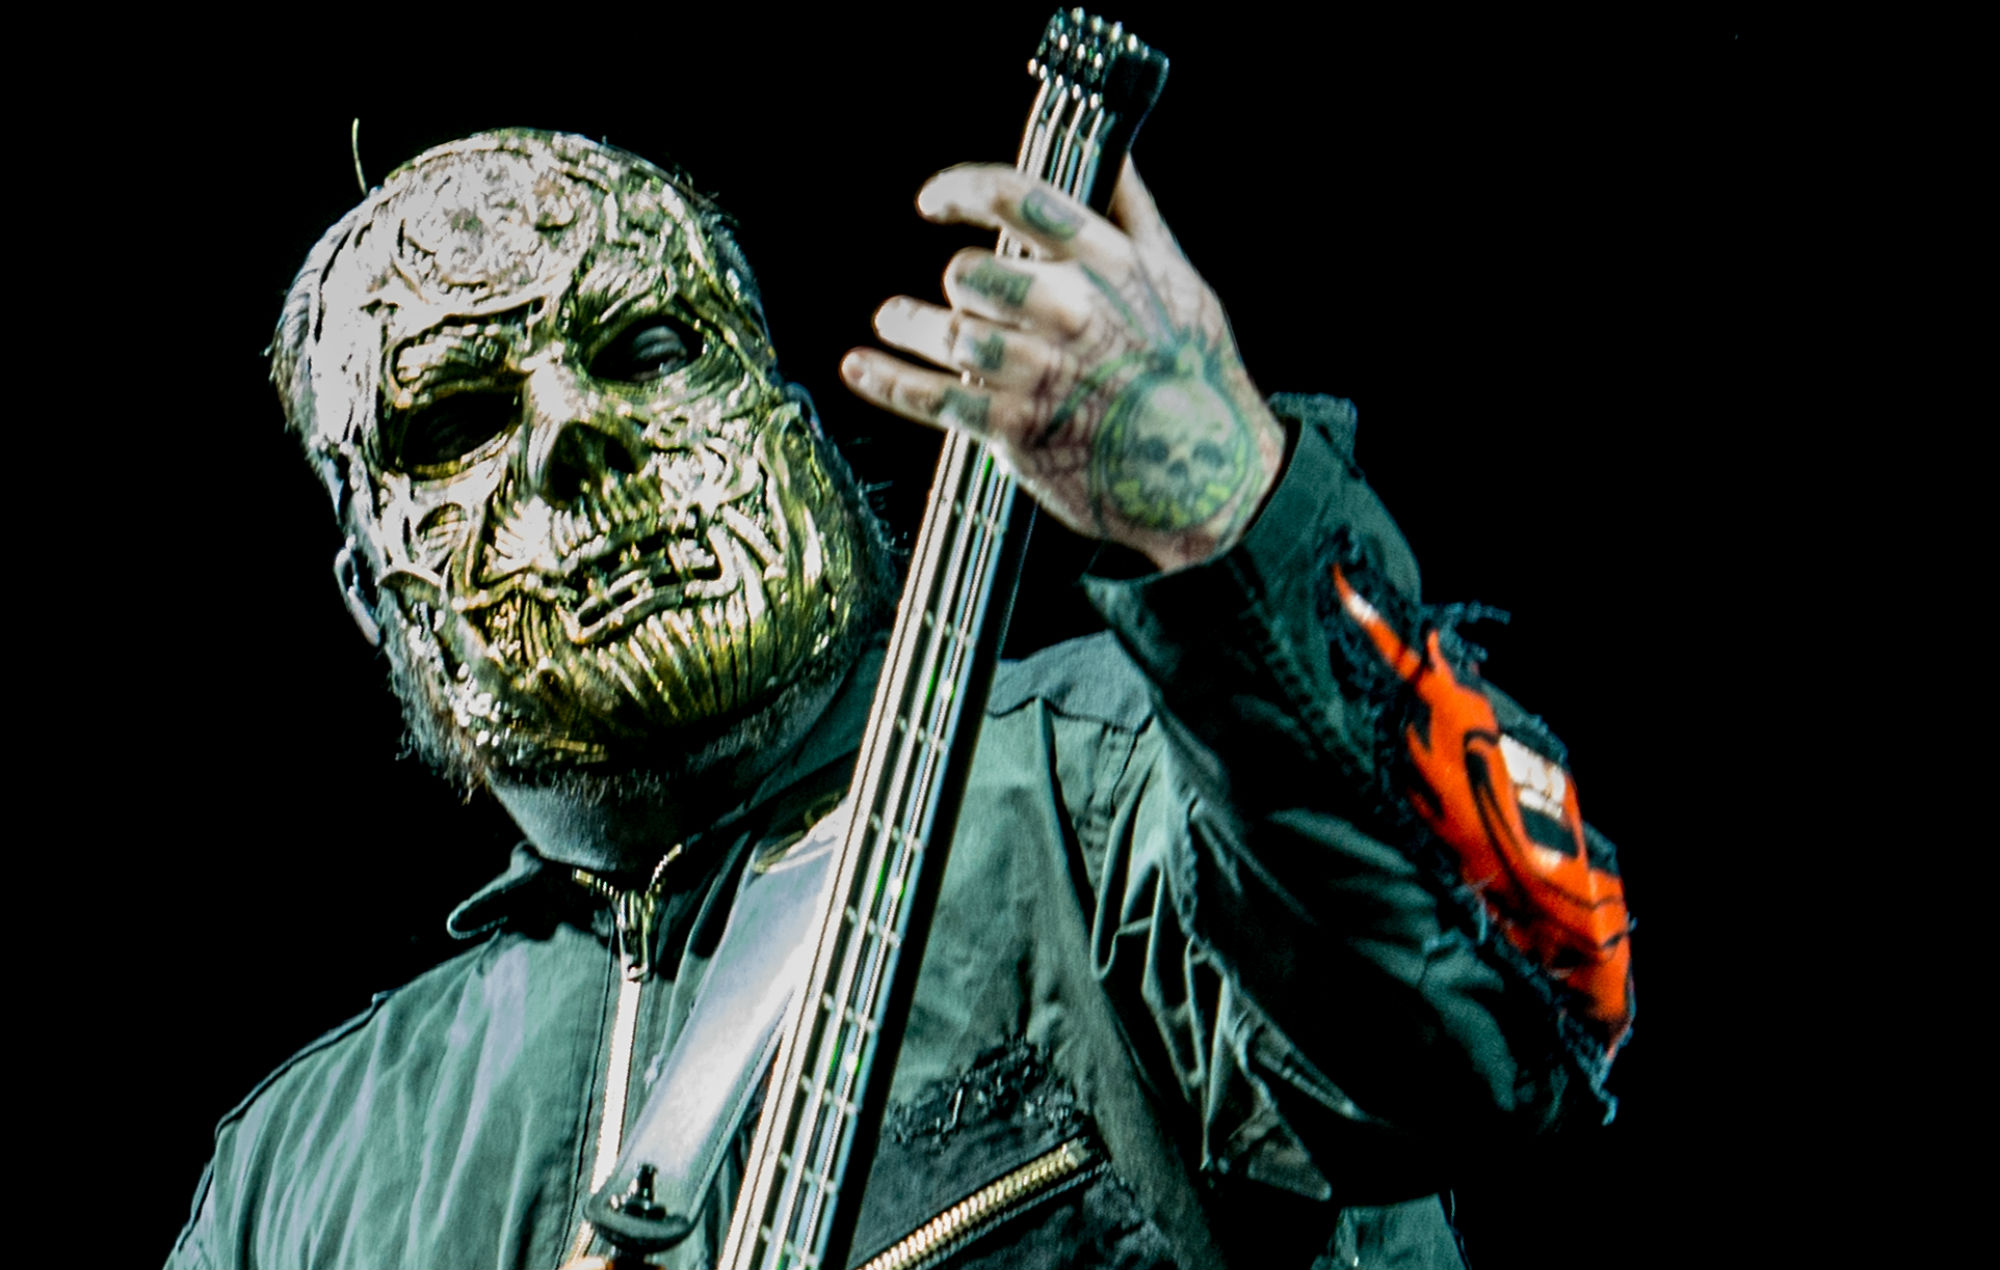 Alessandro 'VMan' Venturella reveals he wasn't even a bassist before joining Slipknot